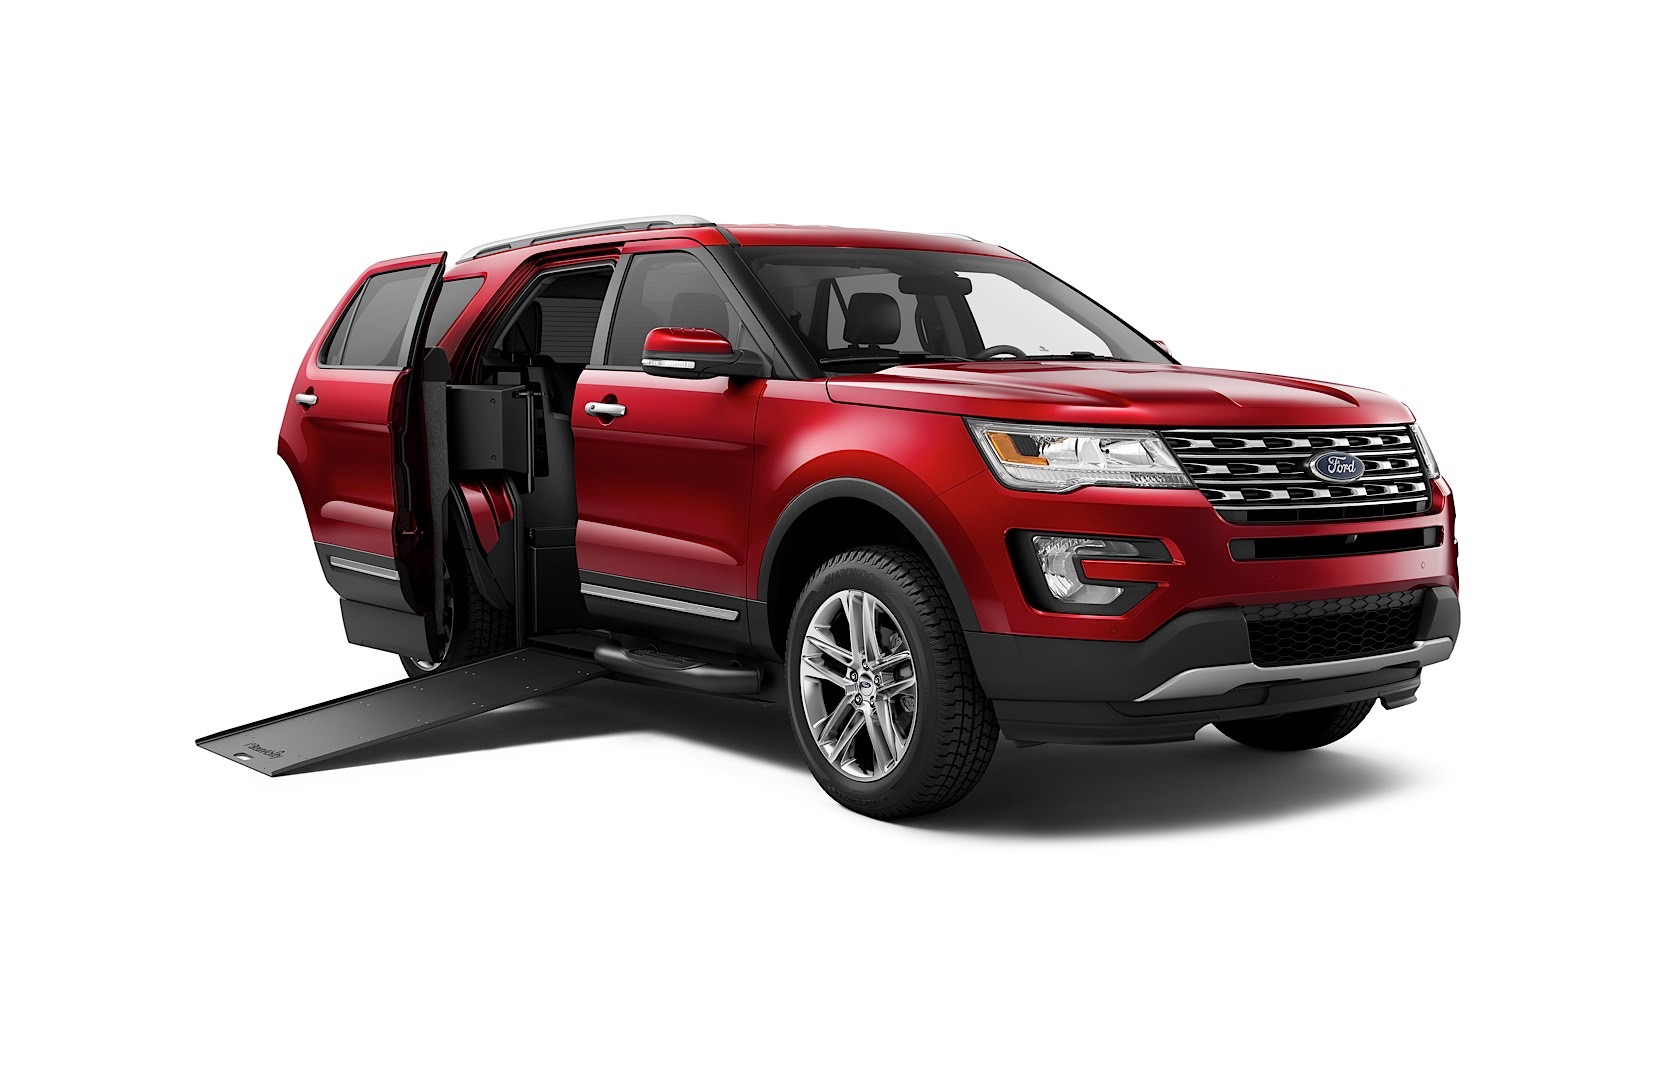 braunability 39 s first wheelchair accessible suv unveiled is based on the ford explorer